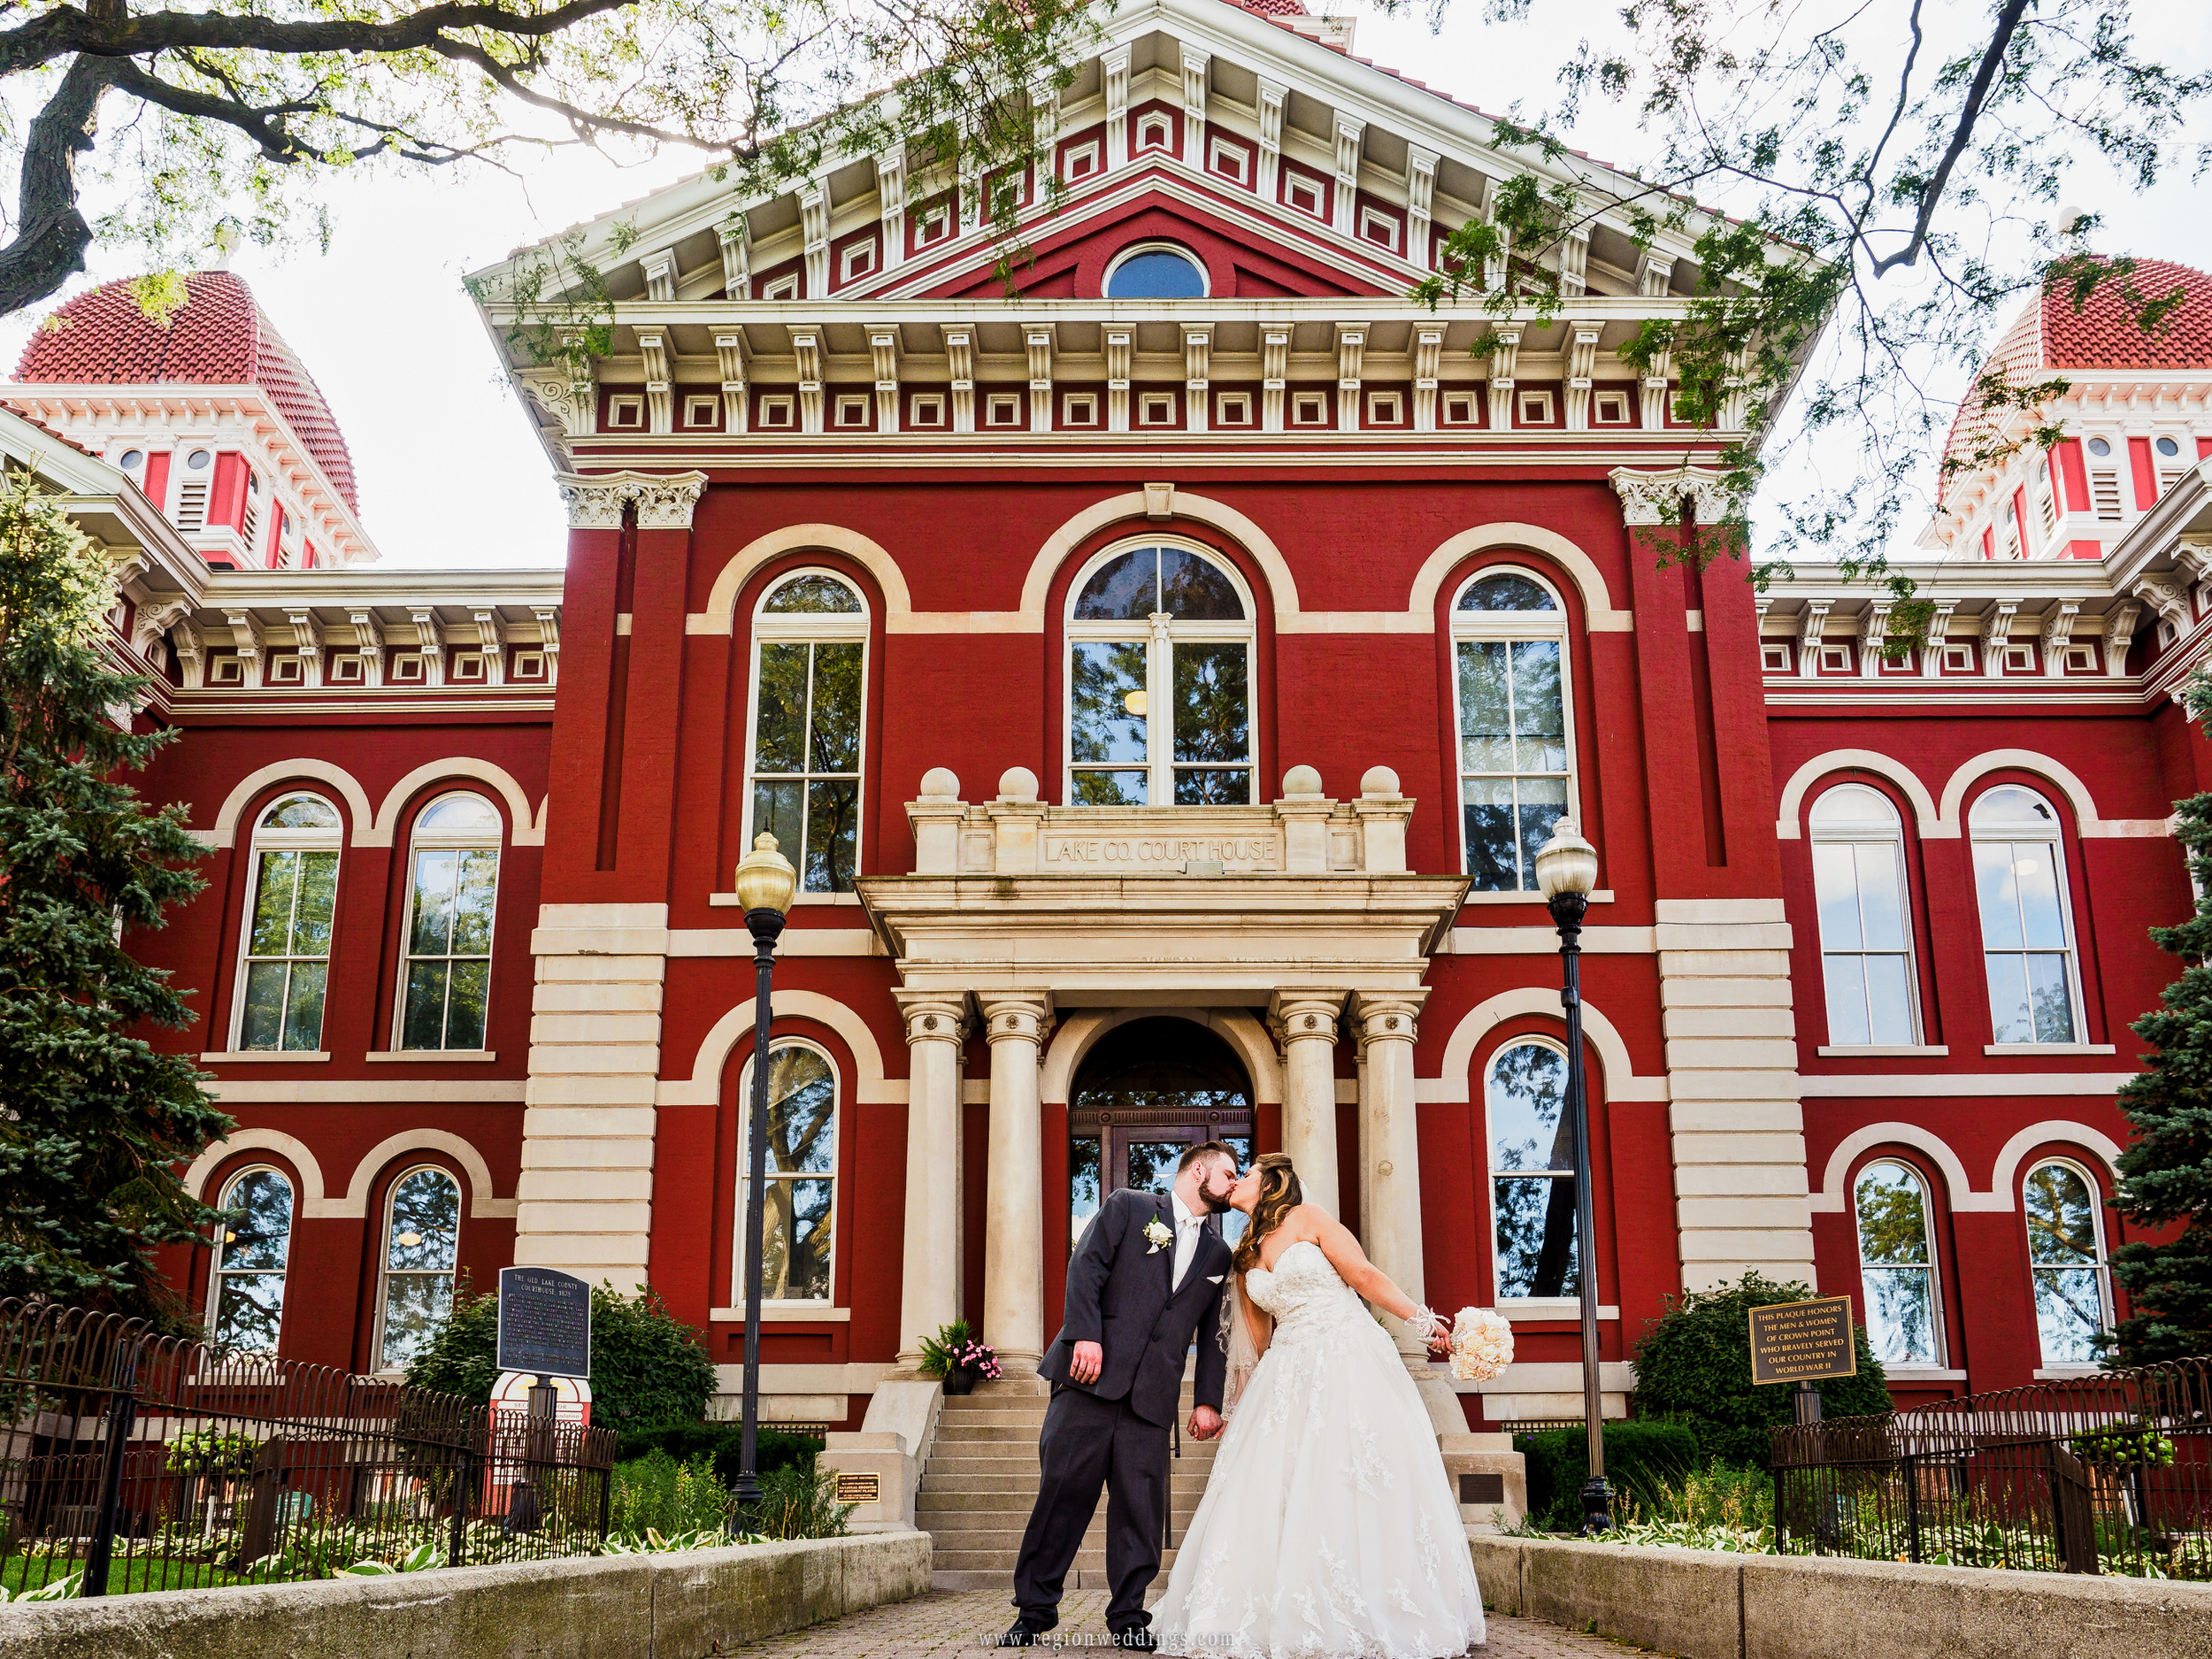 Bride and groom kiss in front of the Grand Old Lady in downtown Crown Point.